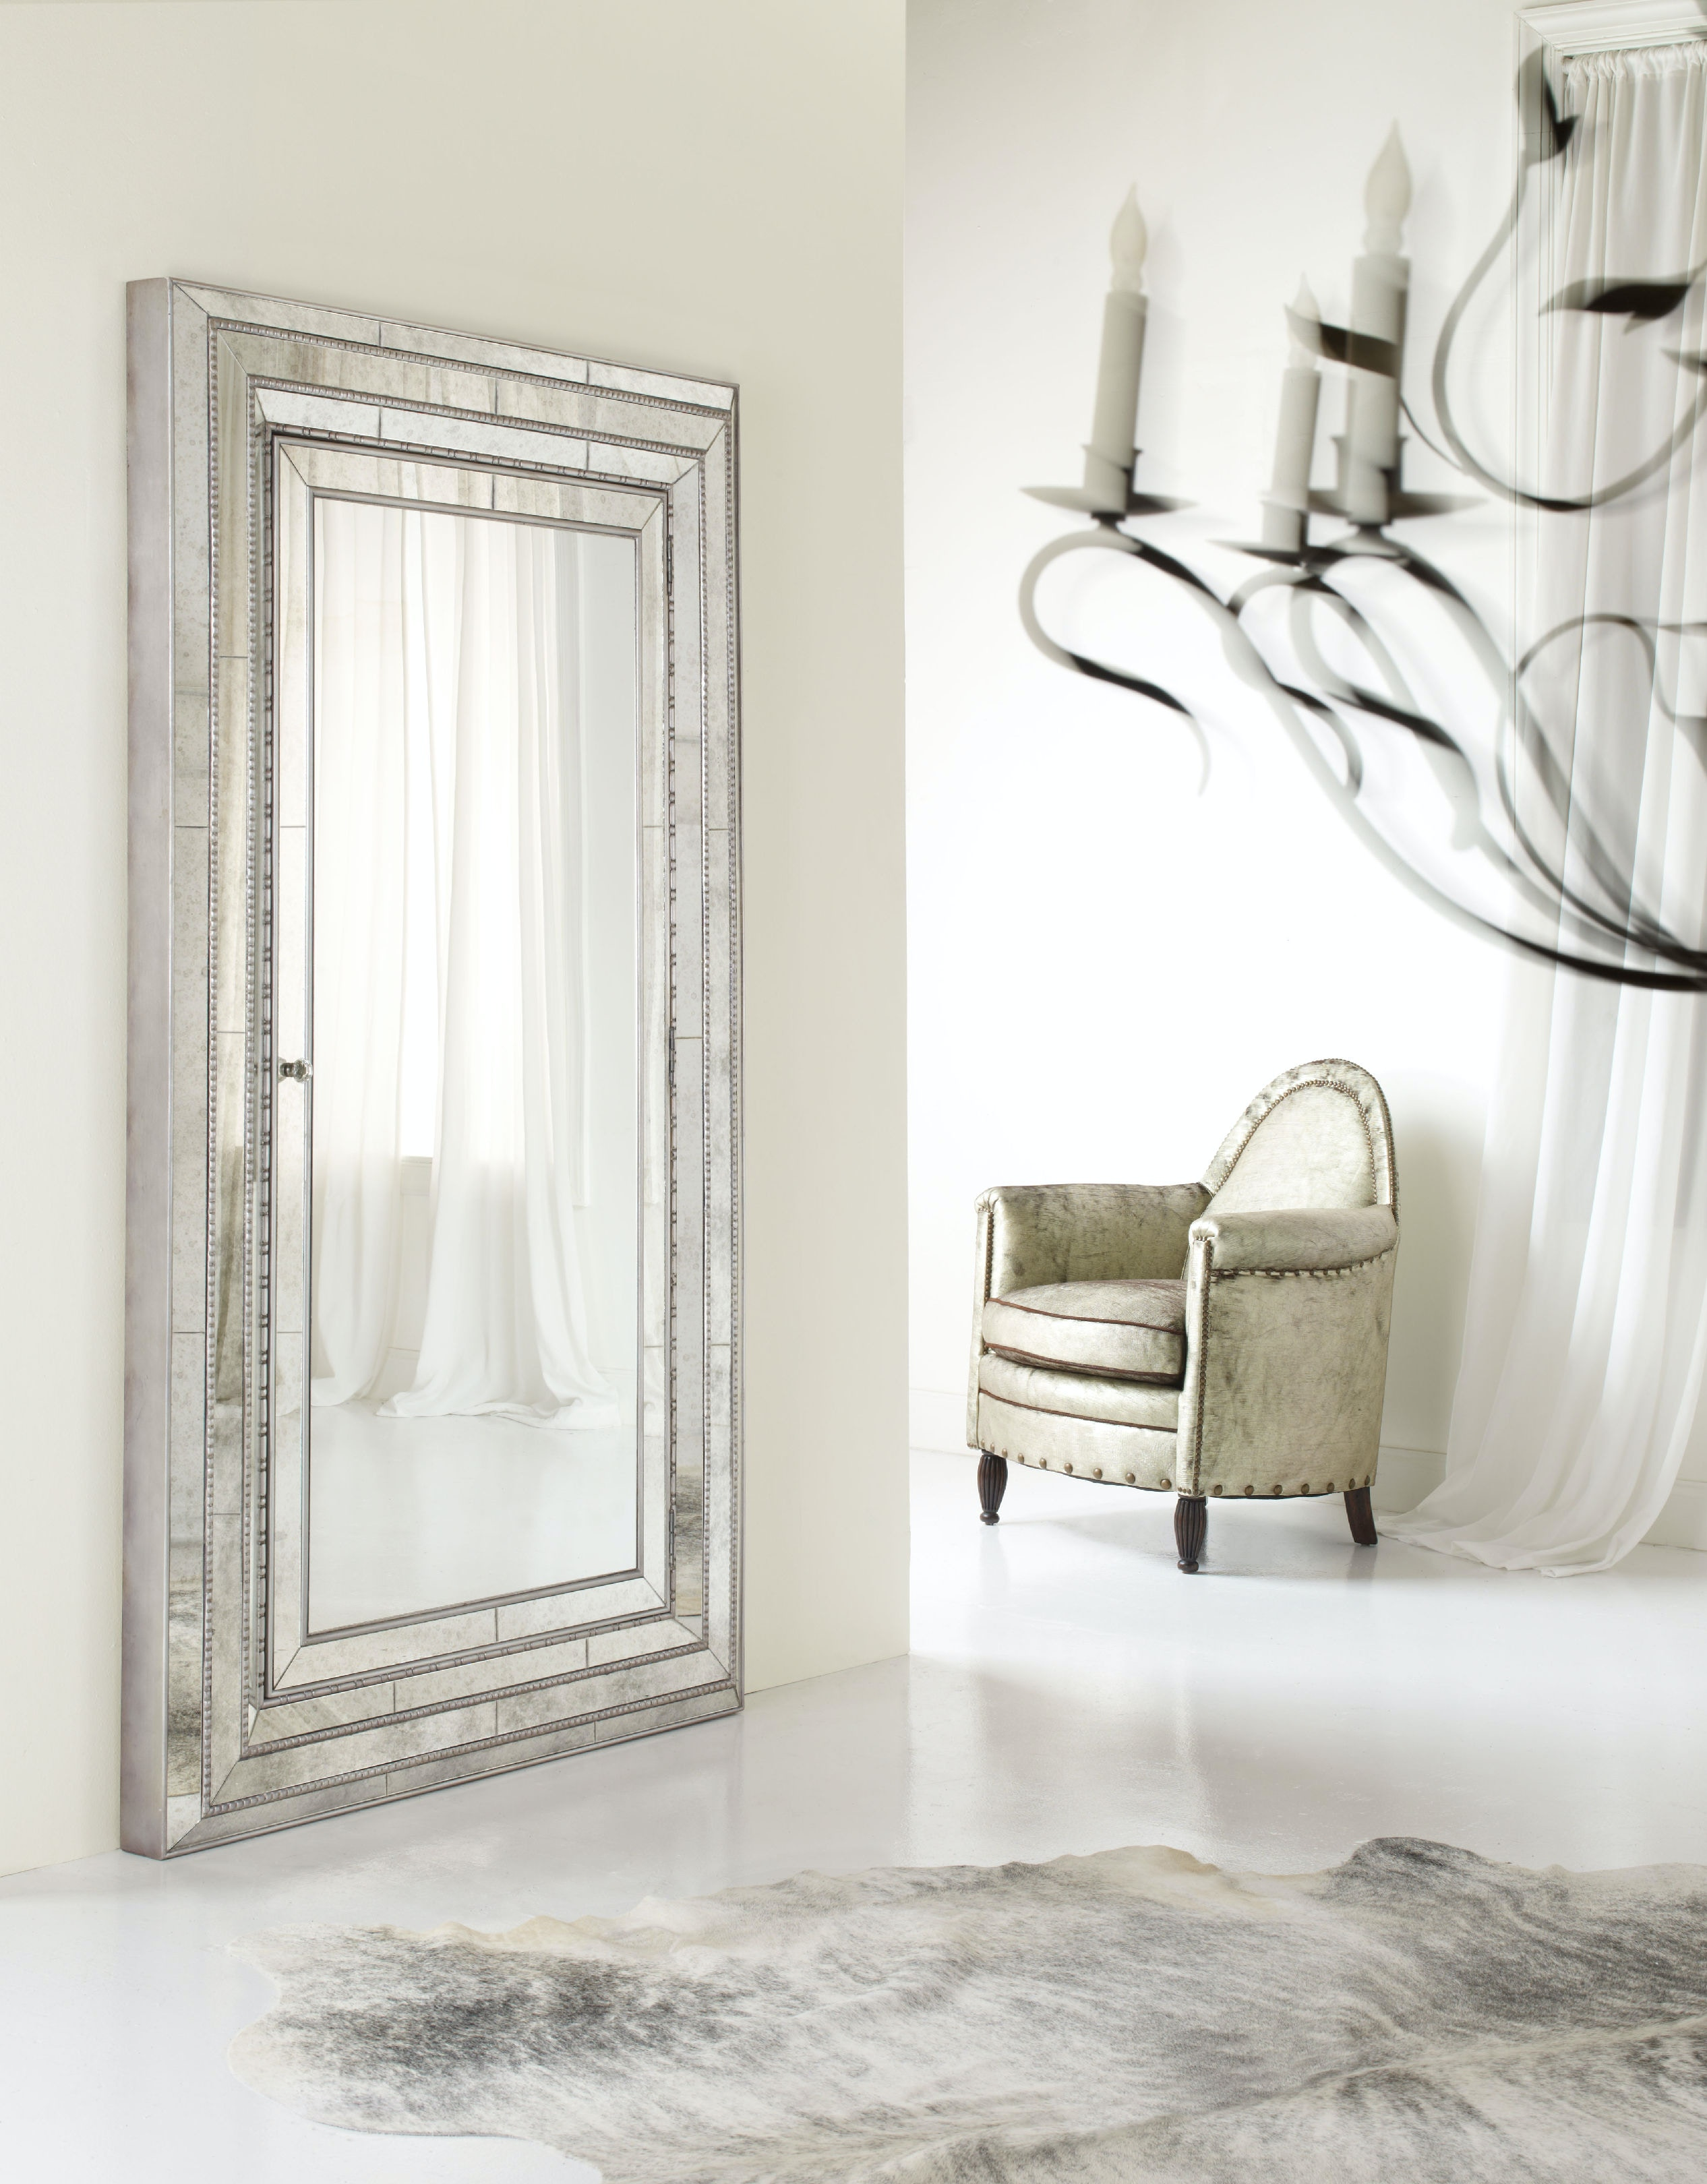 Wonderful Hooker Furniture Melange Glamour Floor Mirror W/Jewelry Armoire Storage  638 50012